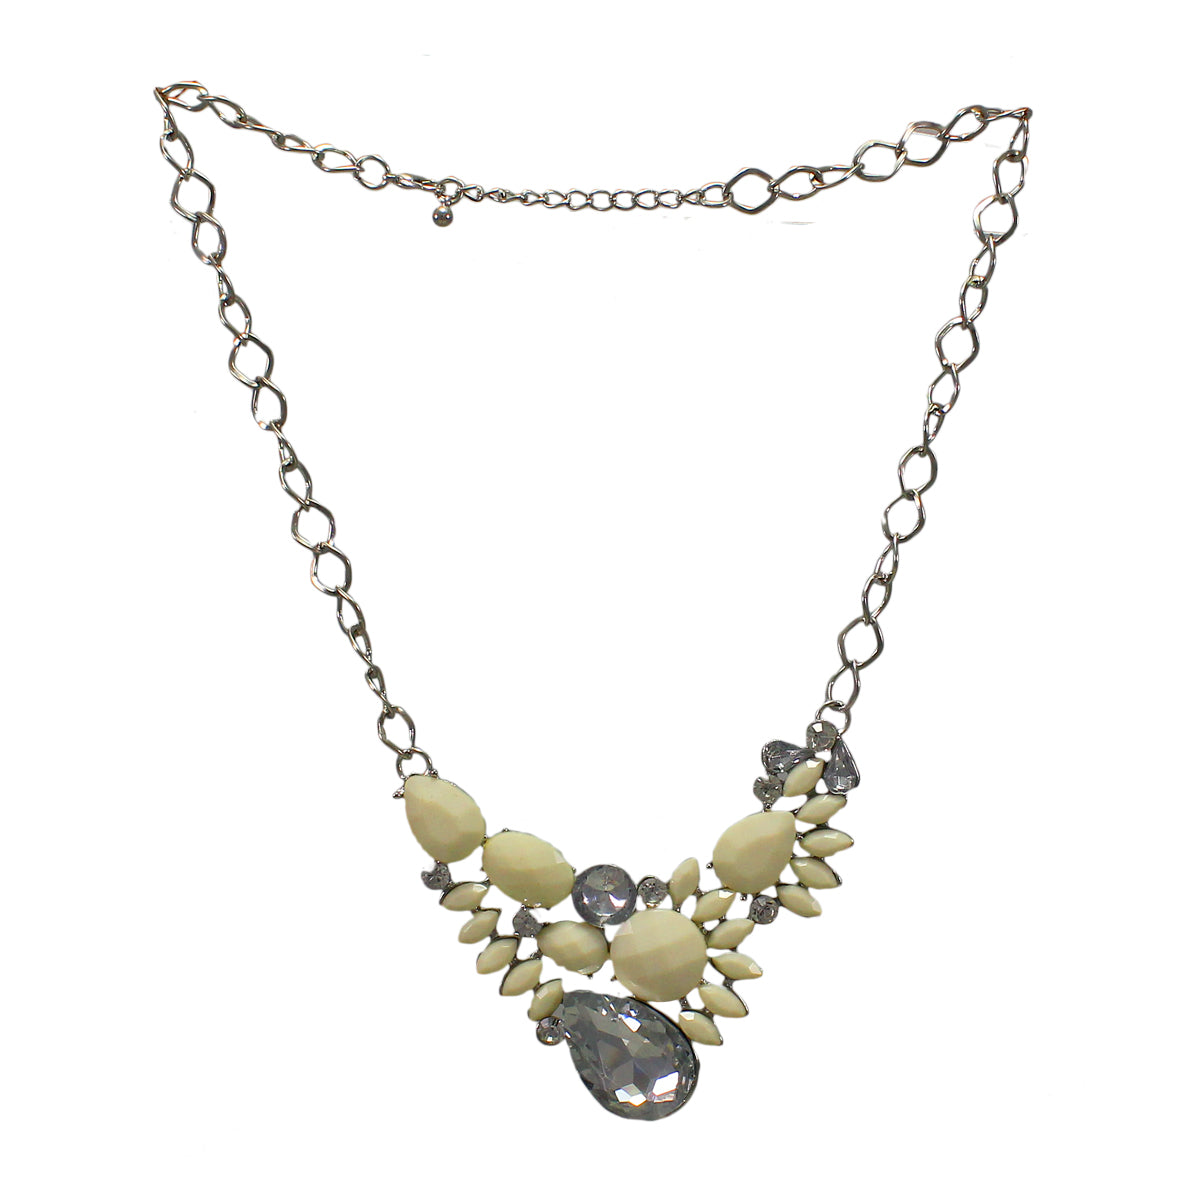 Stylish Designer Necklace with Statement White  Stones